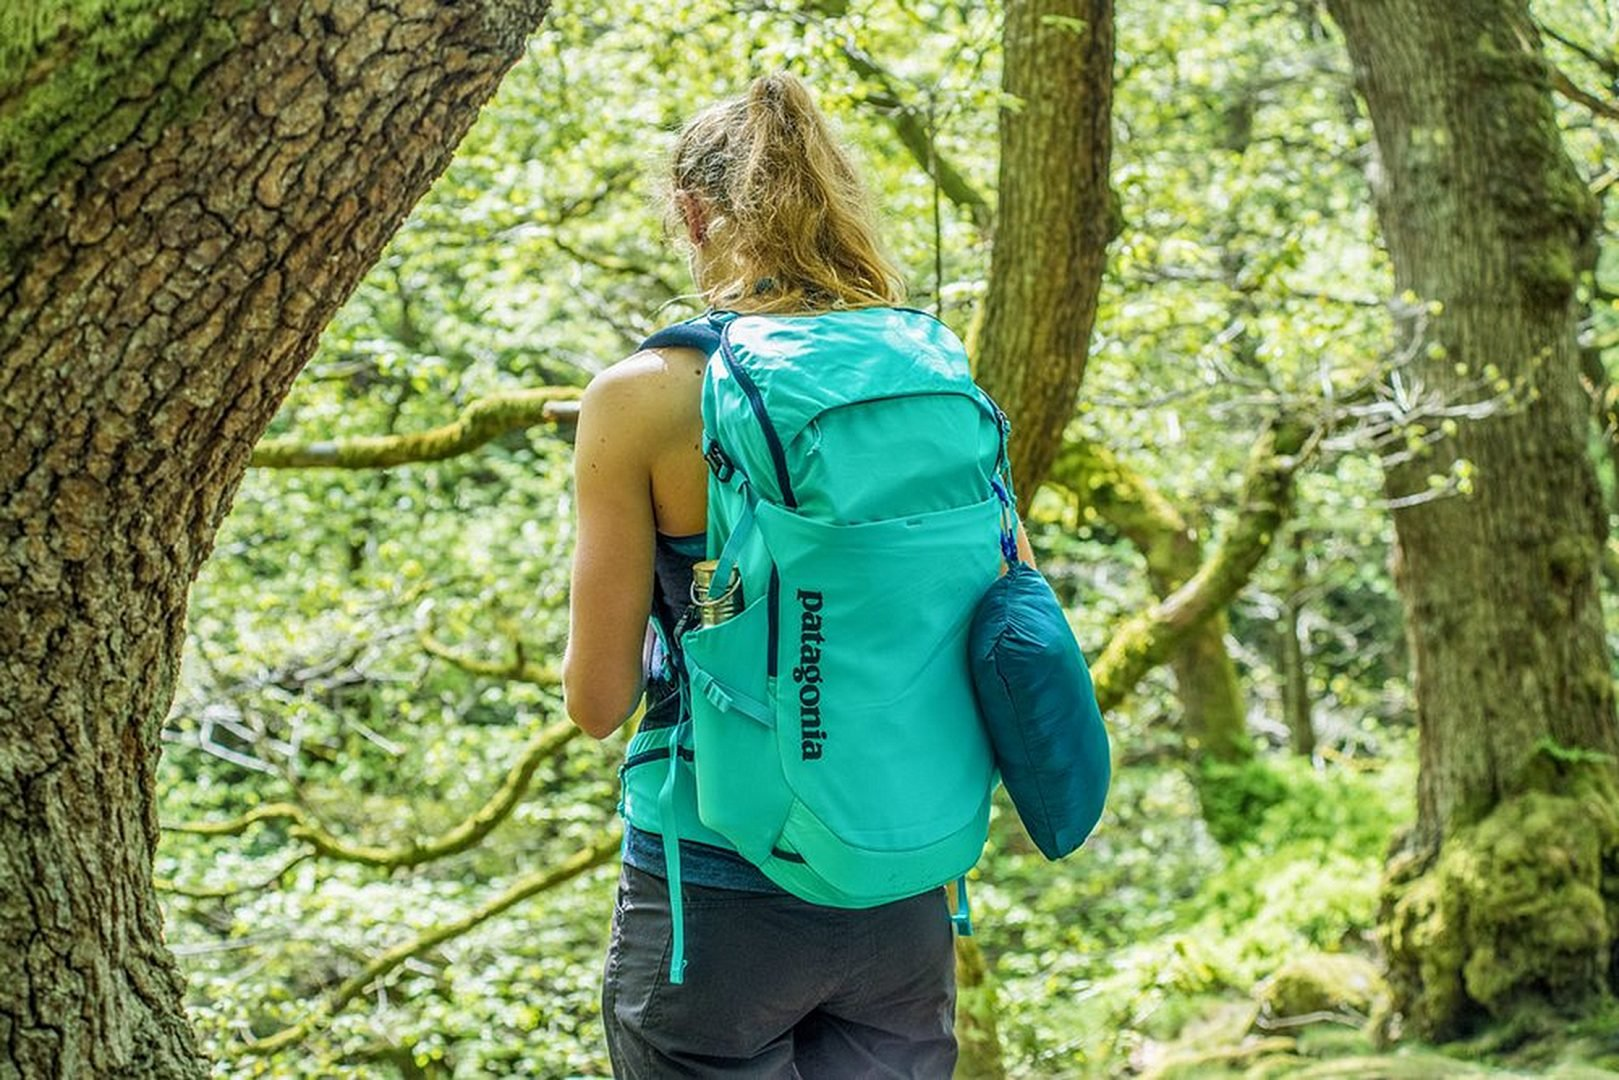 Woman carries the Patagonia Backpack Turqoise